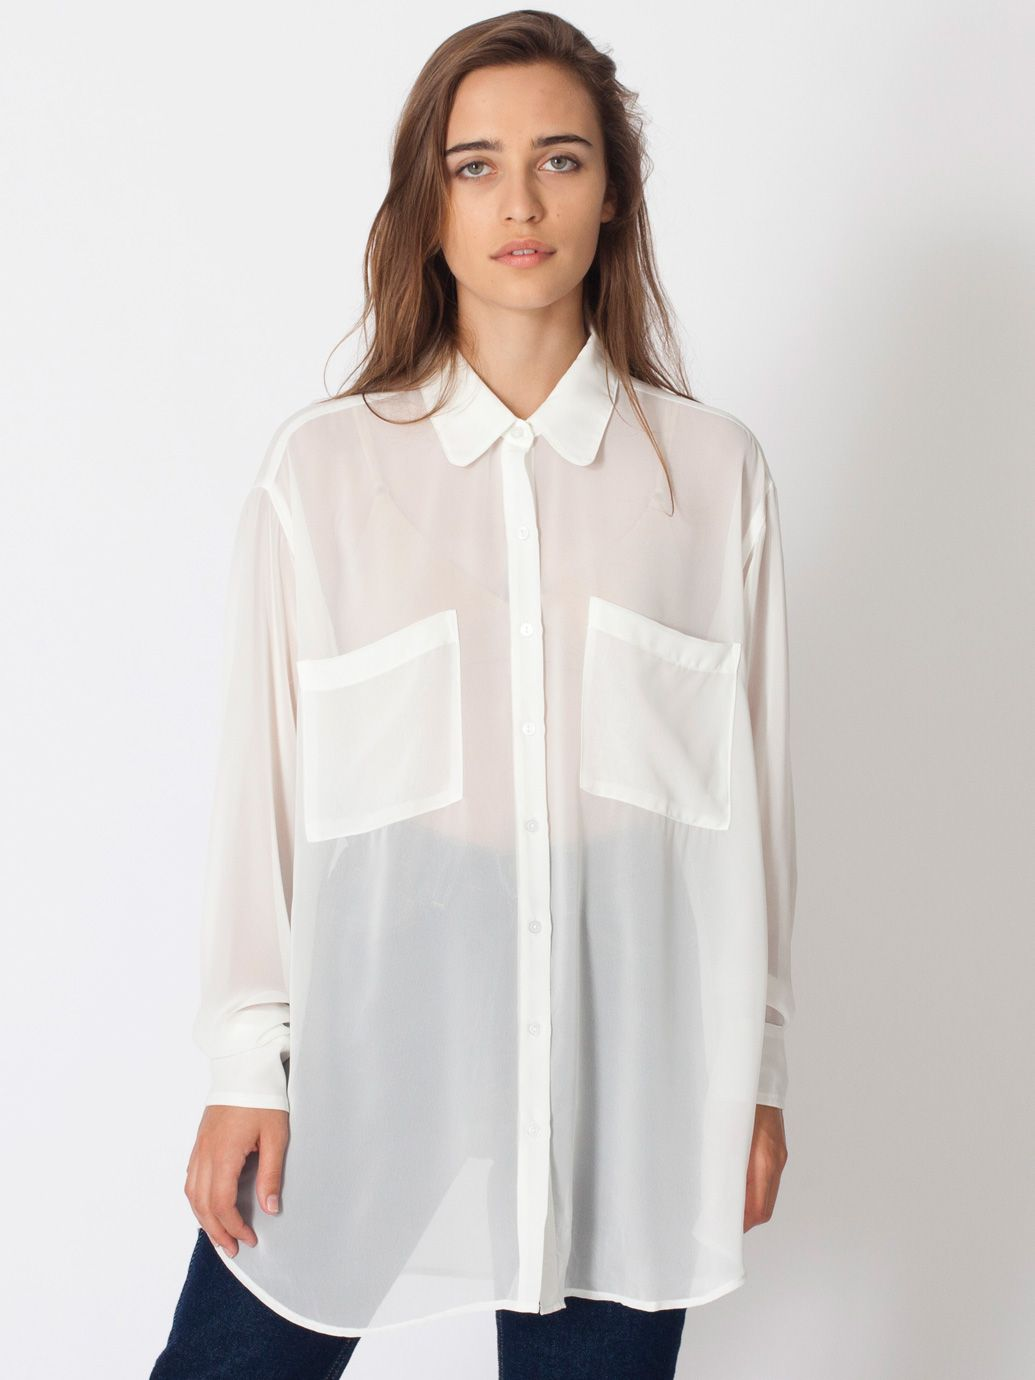 Chiffon oversized button up long sleeves women 39 s for Women s collared button up shirts